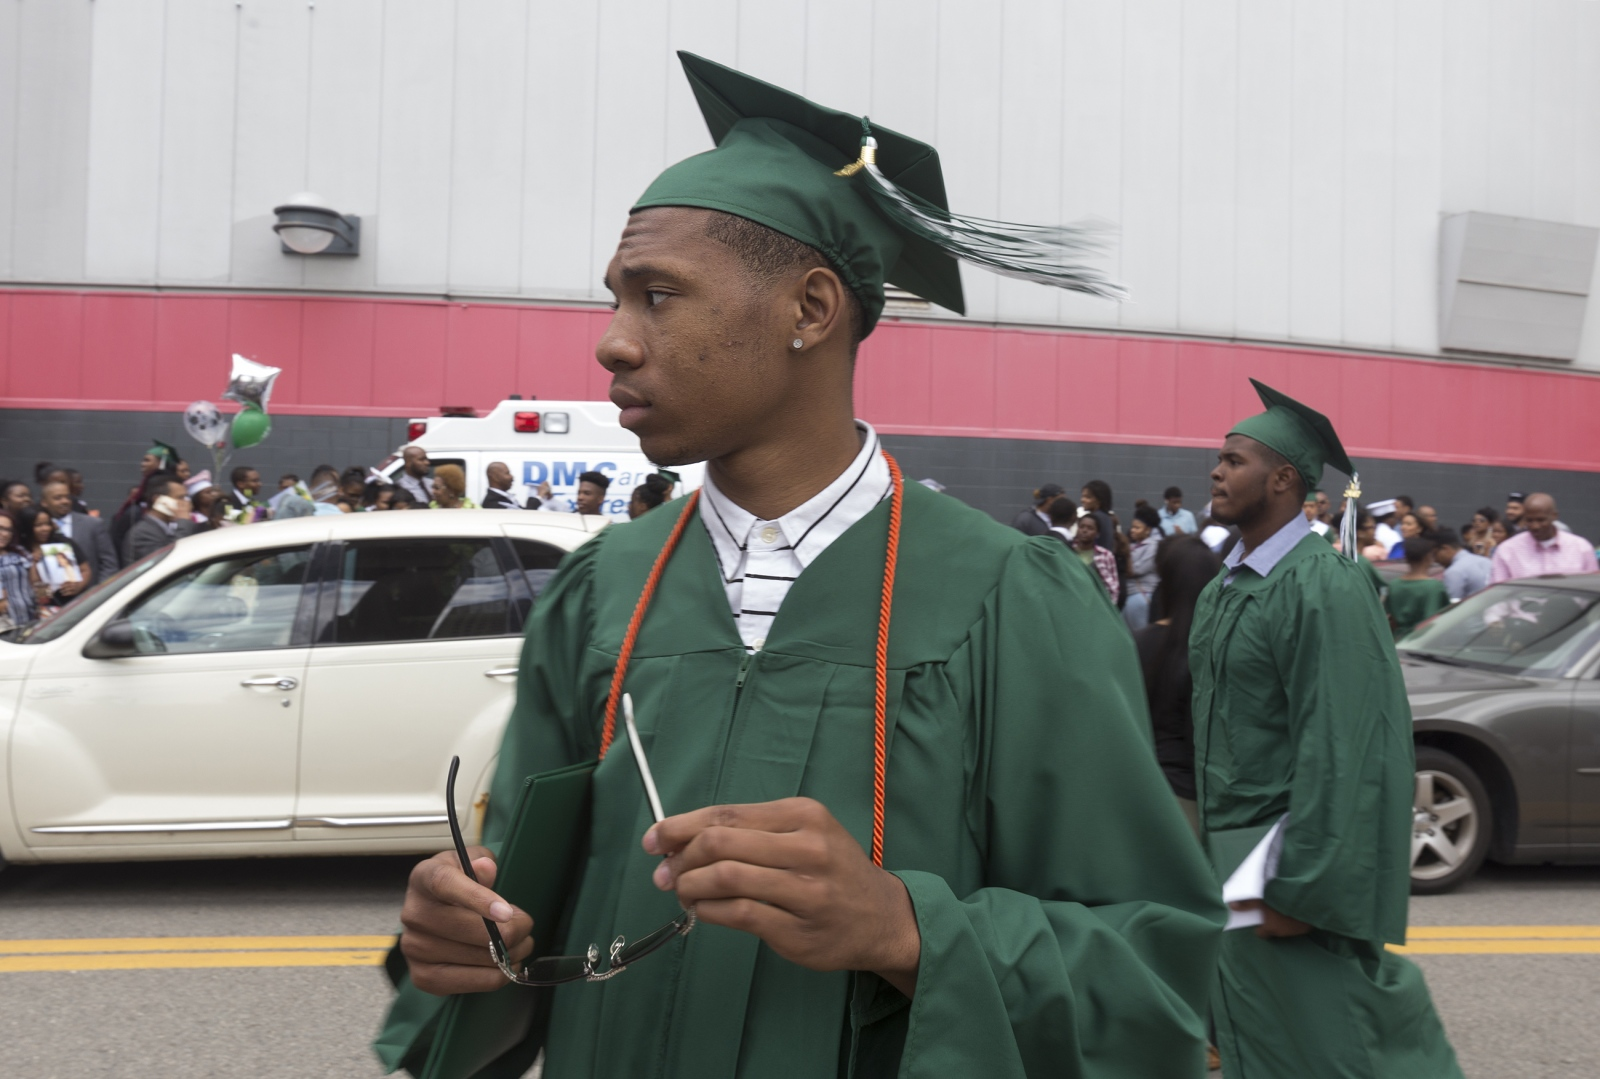 Michael Green, 18, looks for family and friends after his high school graduation ceremony outside Joe Louis Arena in Detroit.  Five years after being an unintended victim of a gunshot, Michael will be heading to Miles College in Alabama on a basketball scholarship.